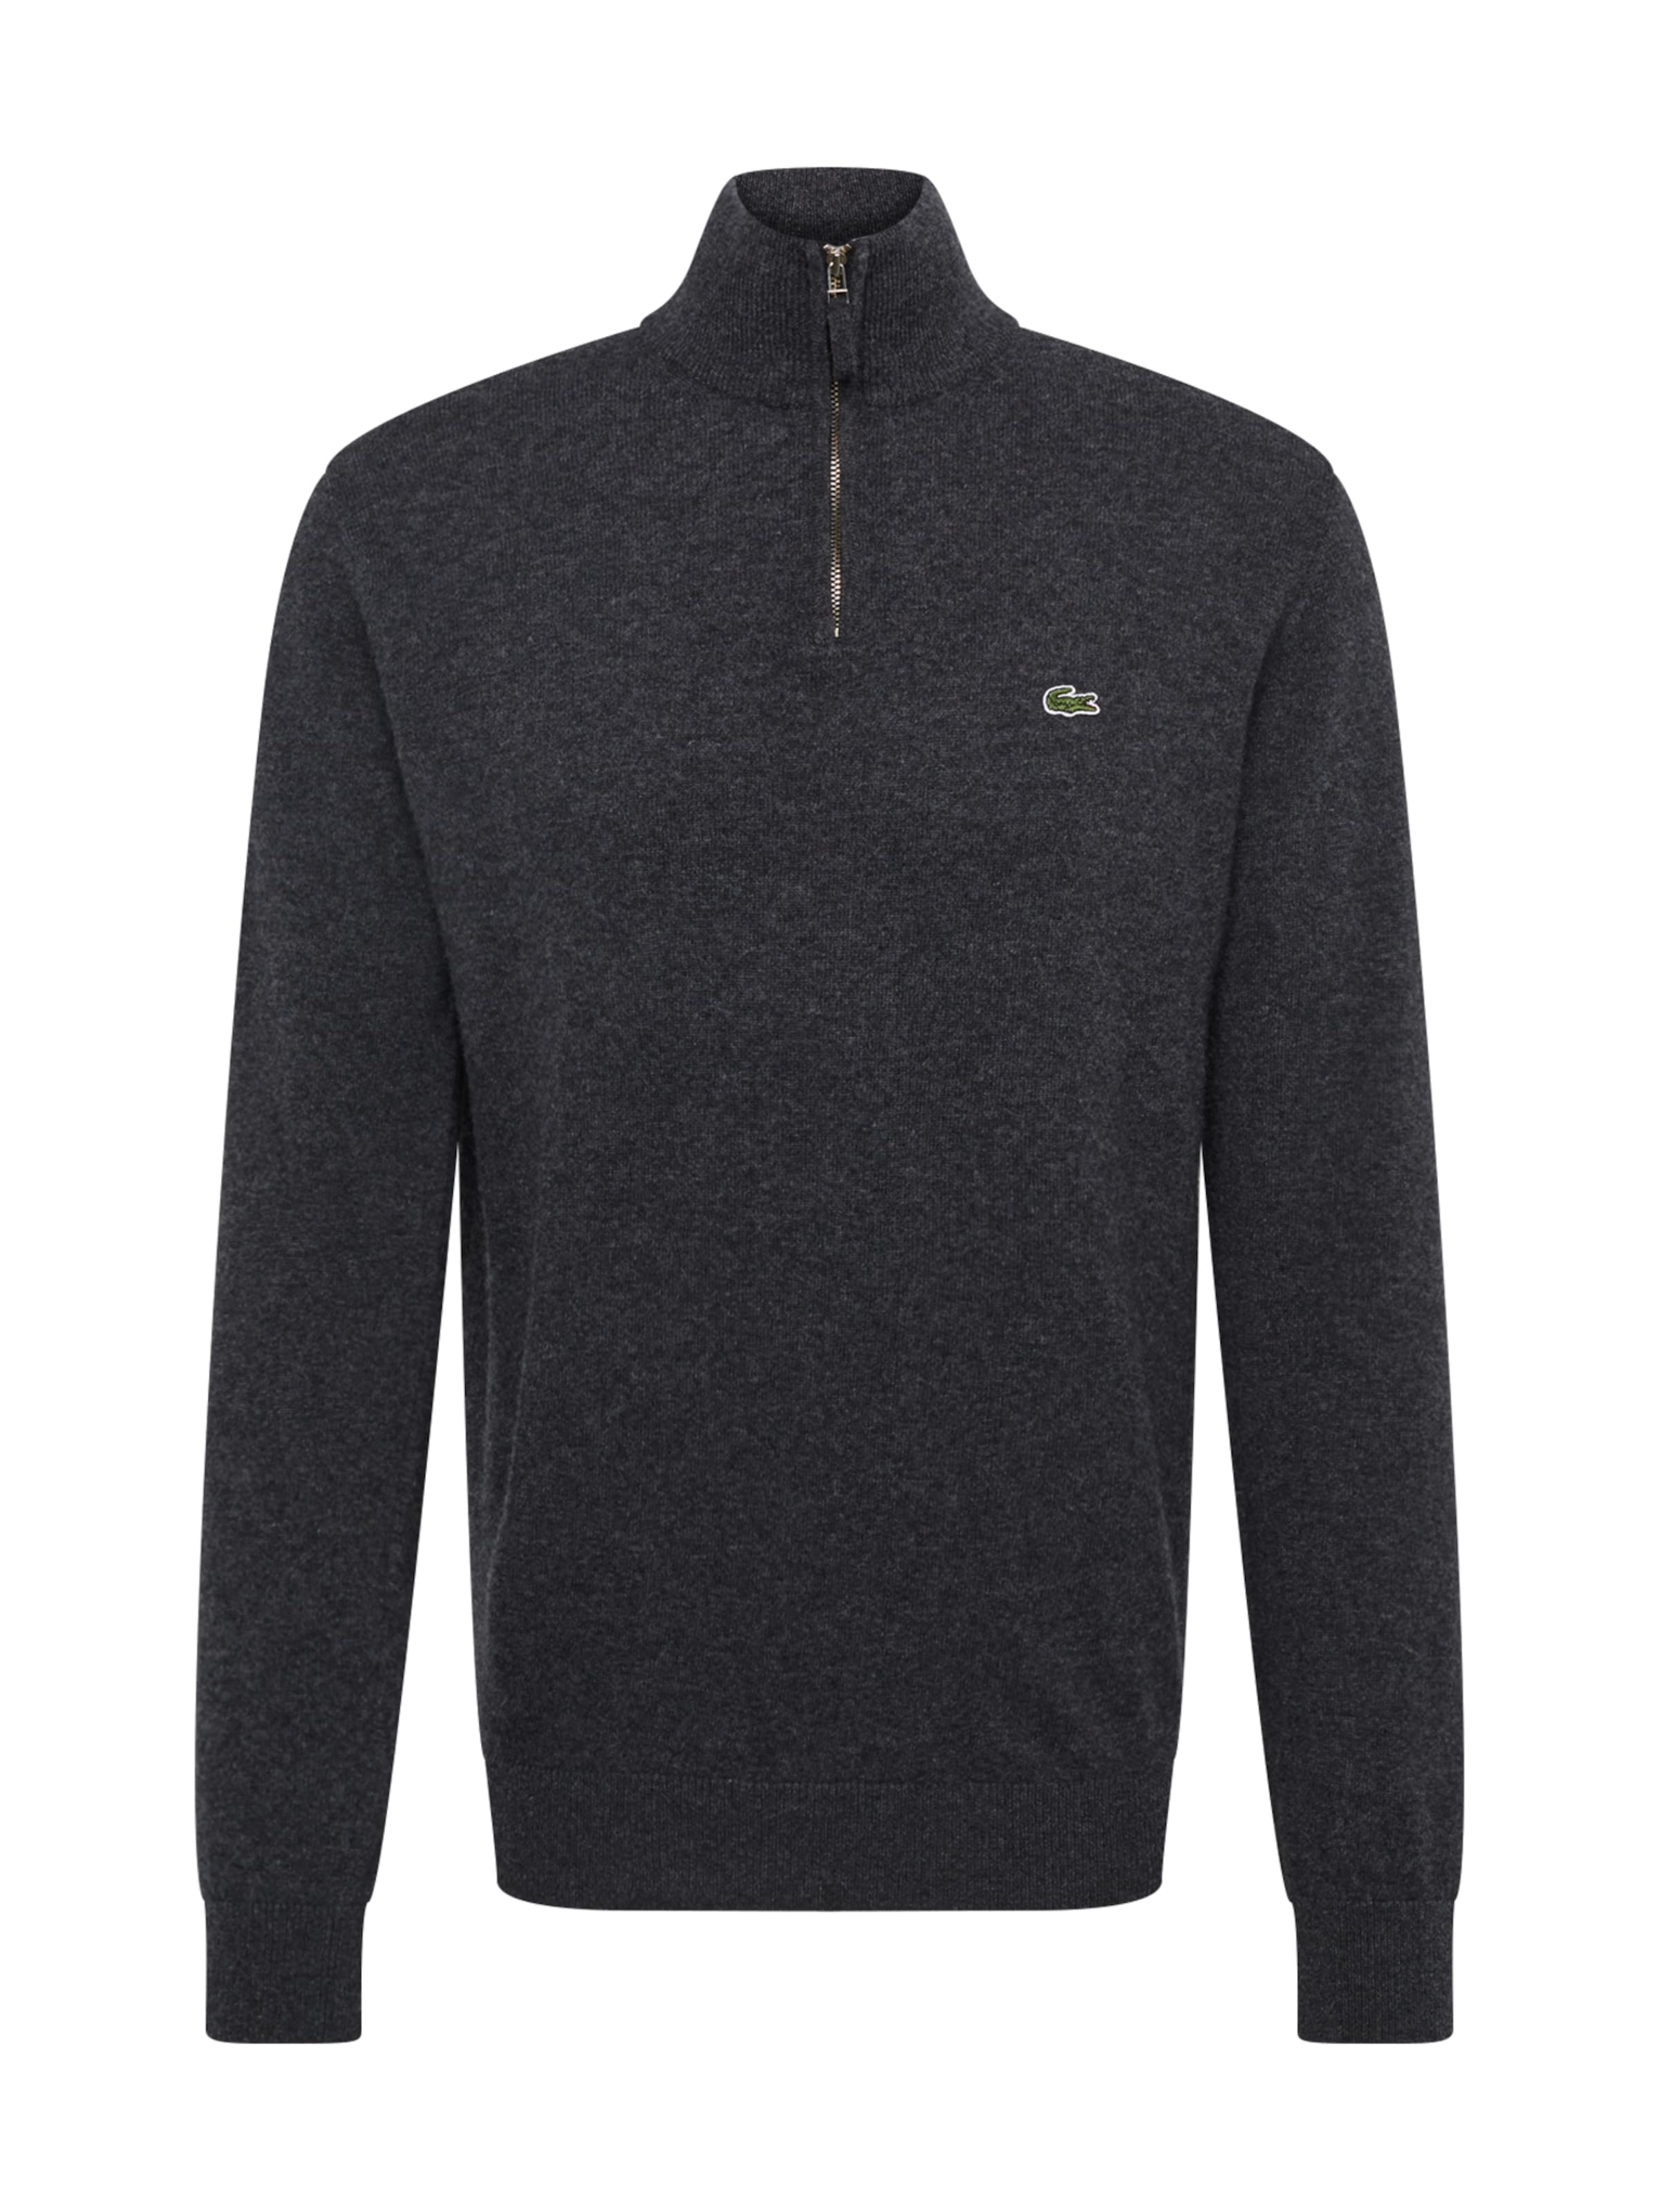 Pull Demi 'tricot CrèmeMarine Lacoste Montant Gris over En Col z' I7vbyYf6g